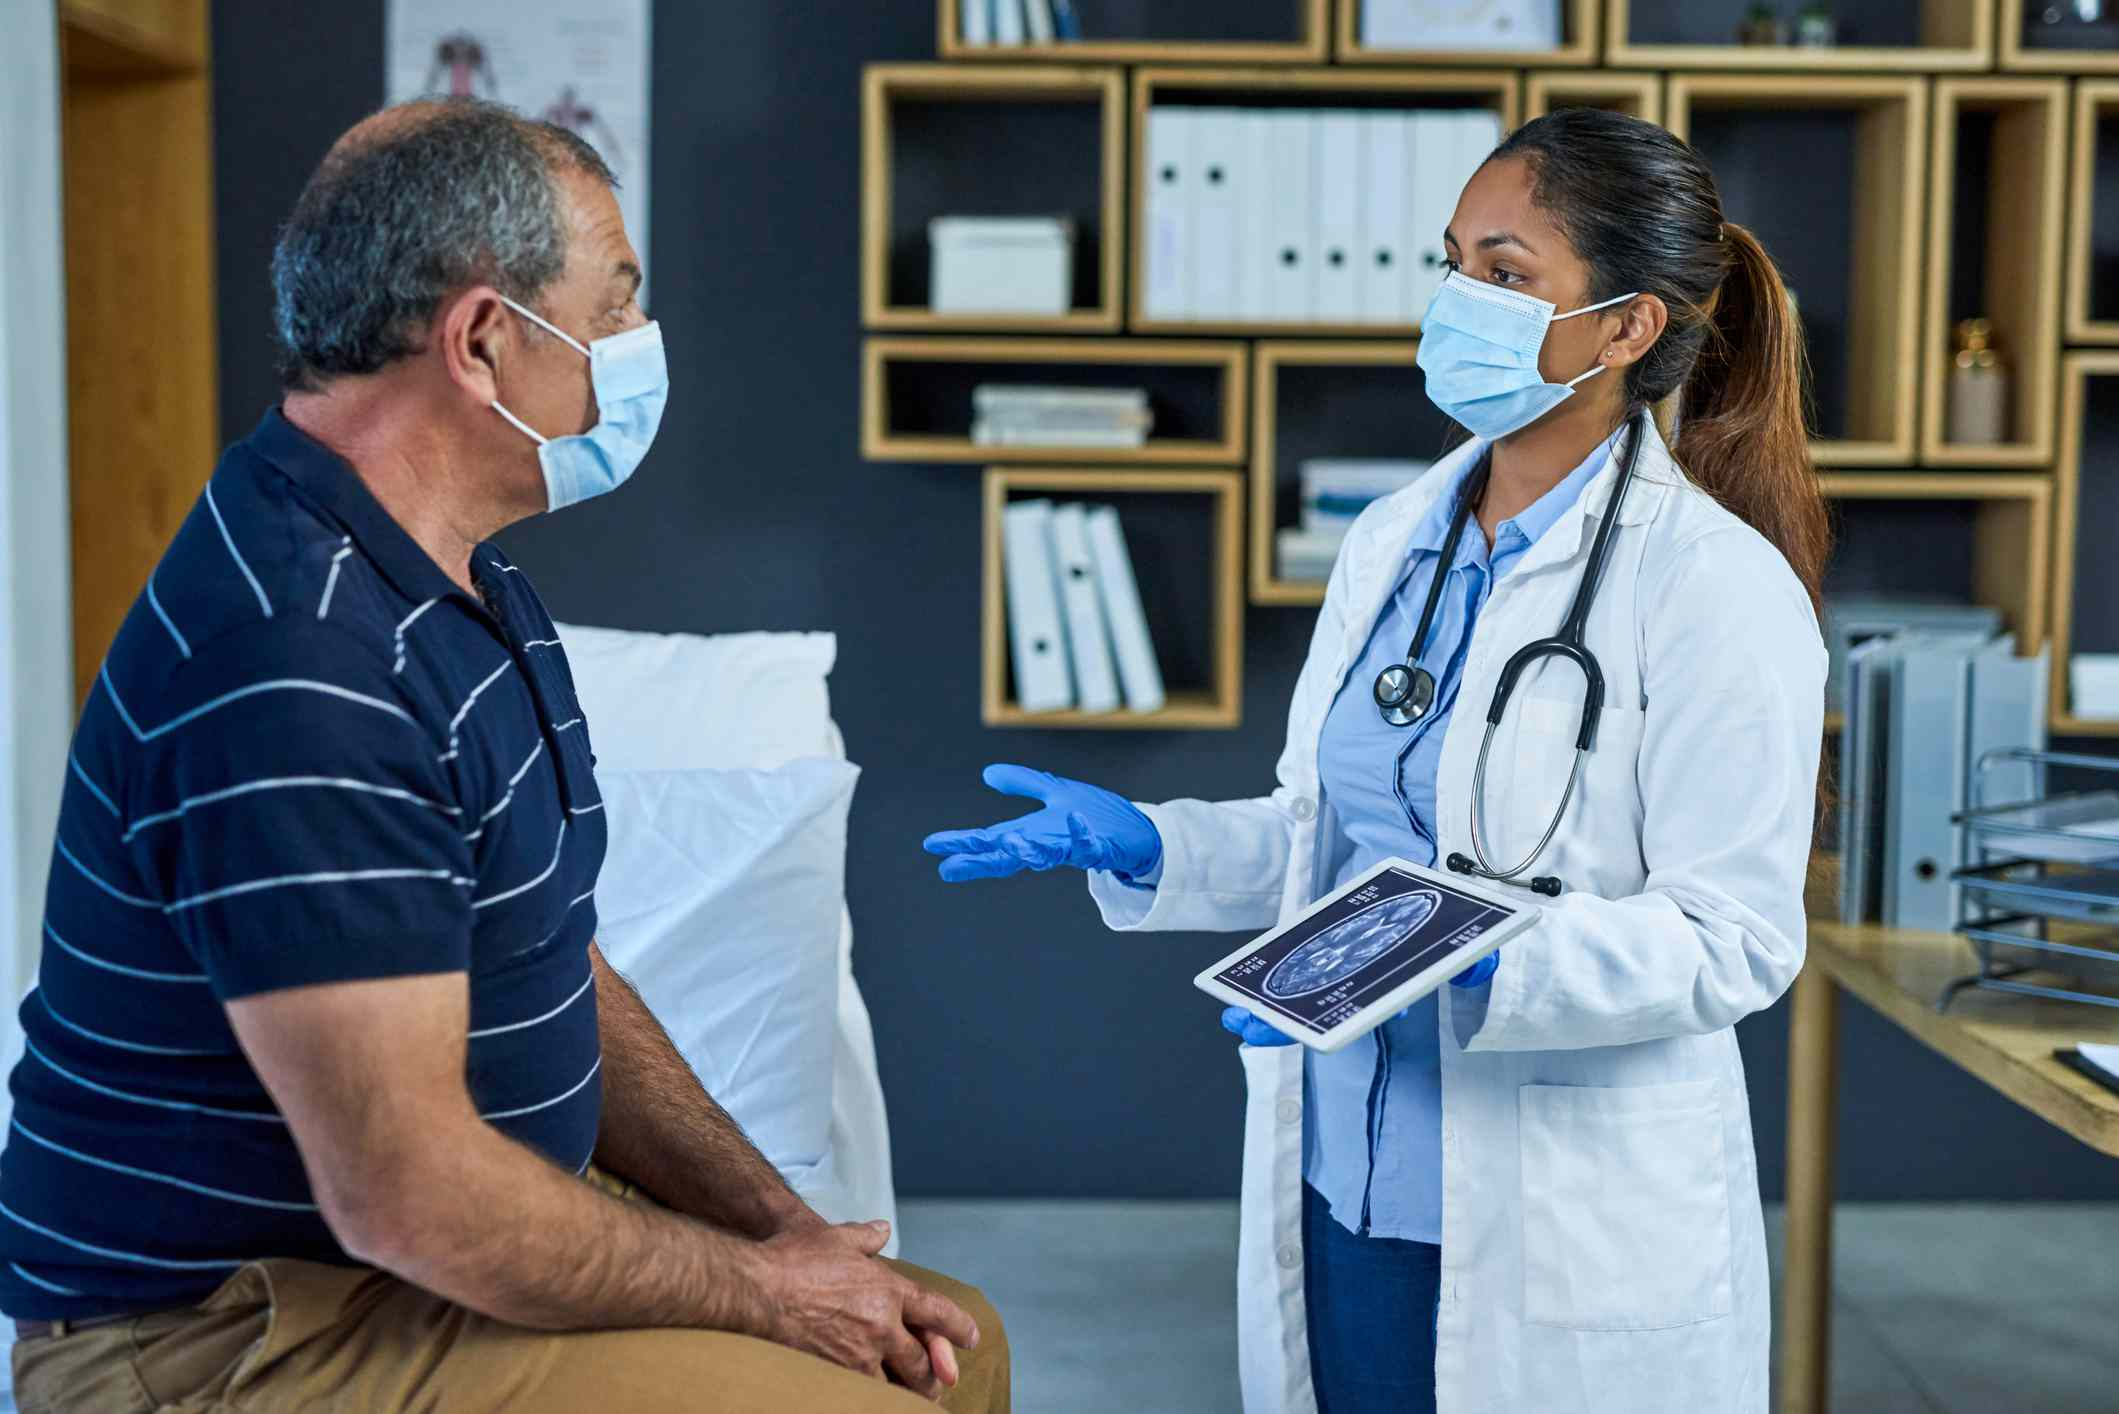 Doctor discusses MRI with patient